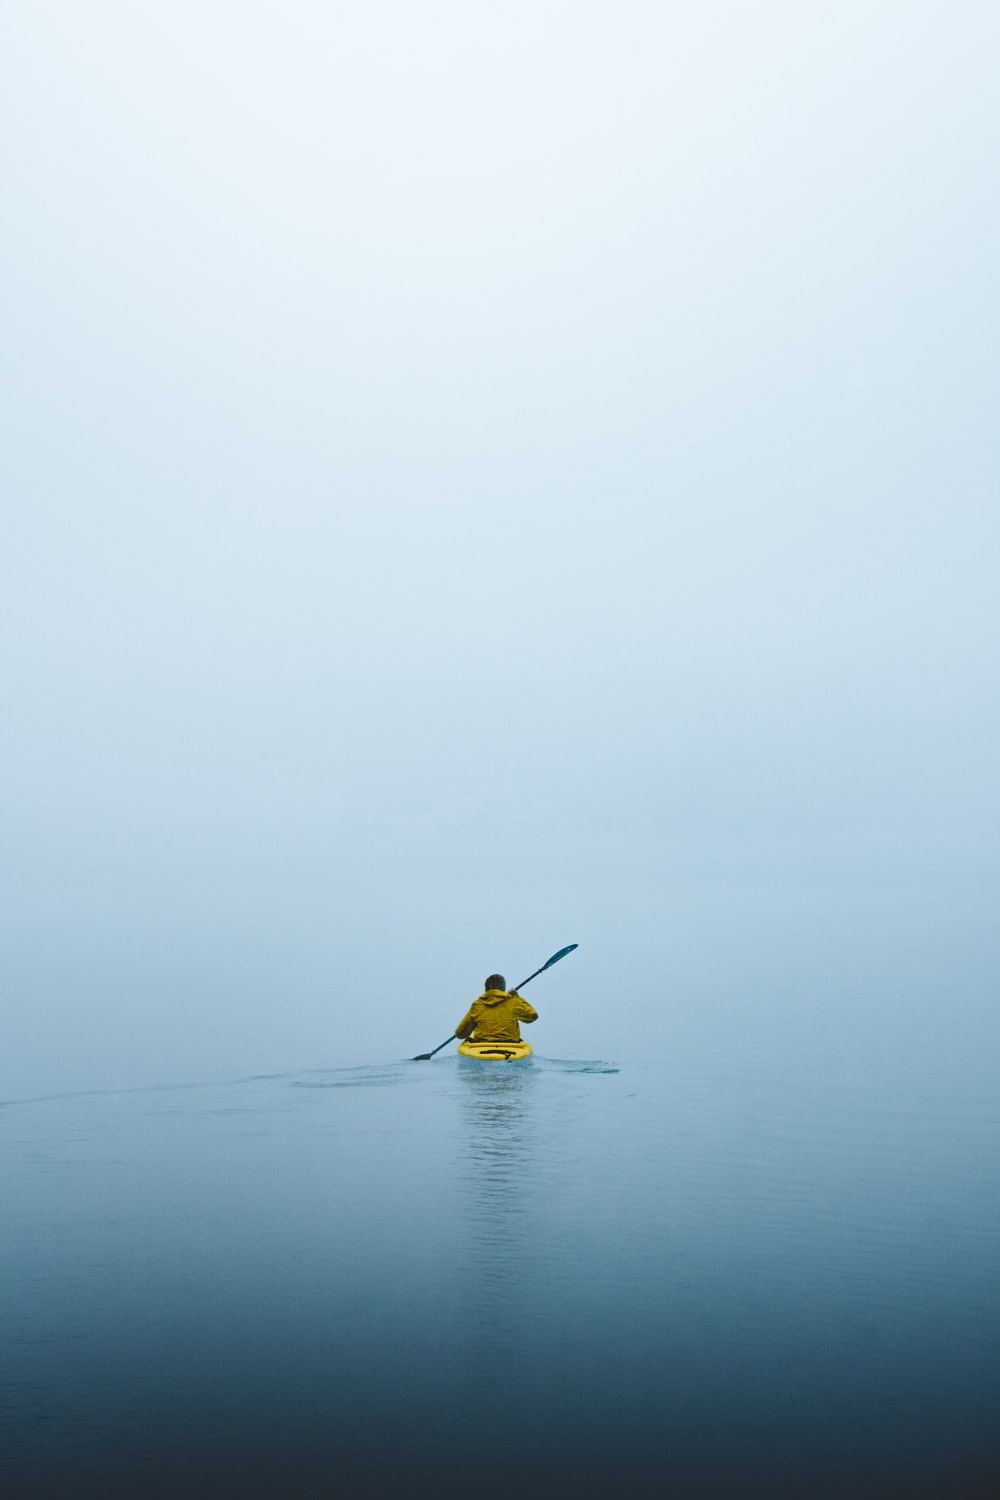 man on kayak during daytime